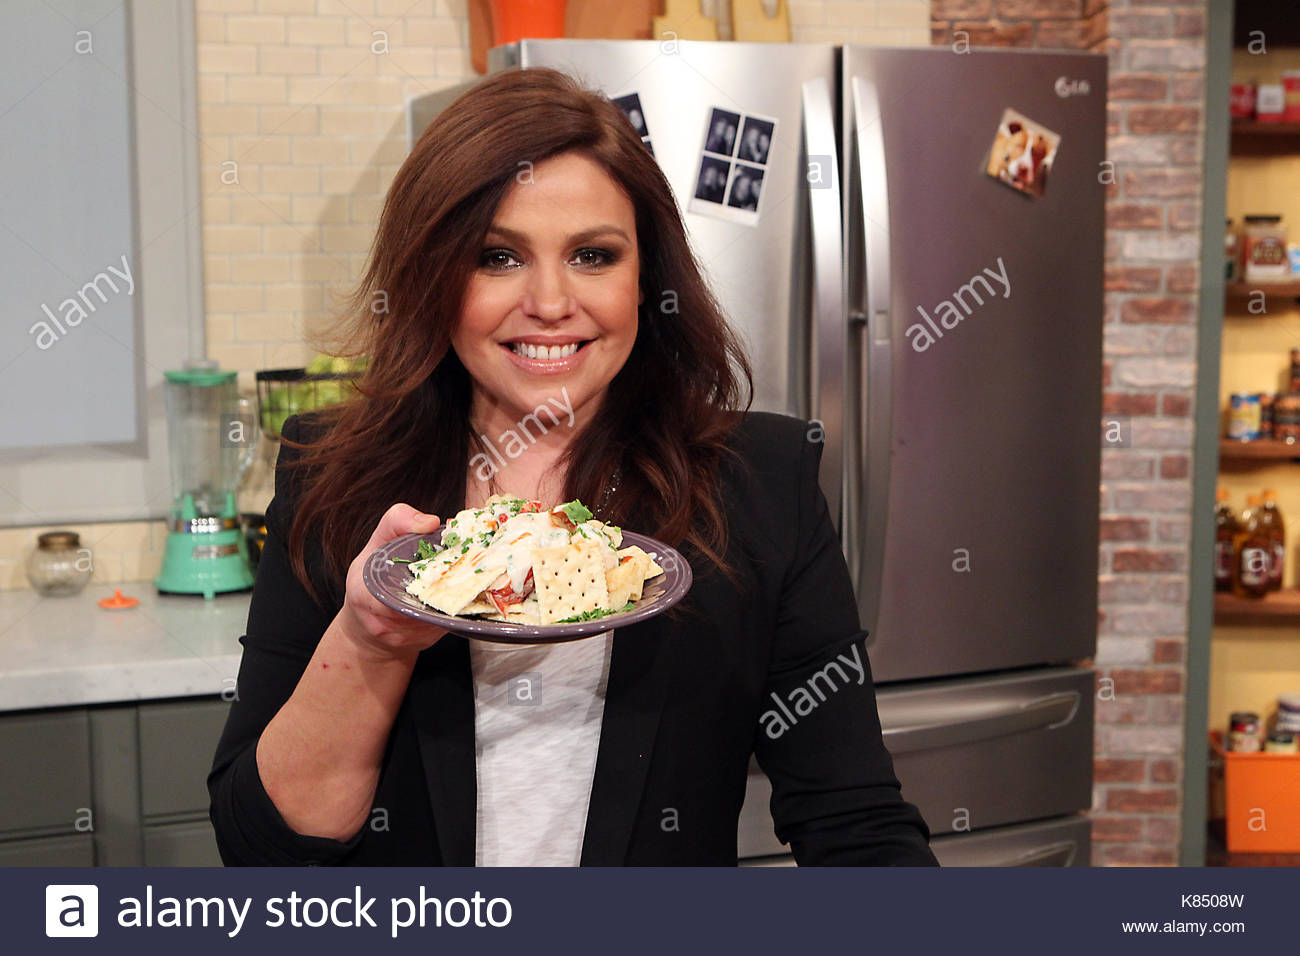 Rachael Ray brings her take on cooking to QVC with a unique collection of bright & bold cookware and bakeware. Her 30 Minute Meals show, best-selling cookbooks, award-winning magazine, and Emmy ® award-winning daytime talk show have all helped make her a household name.